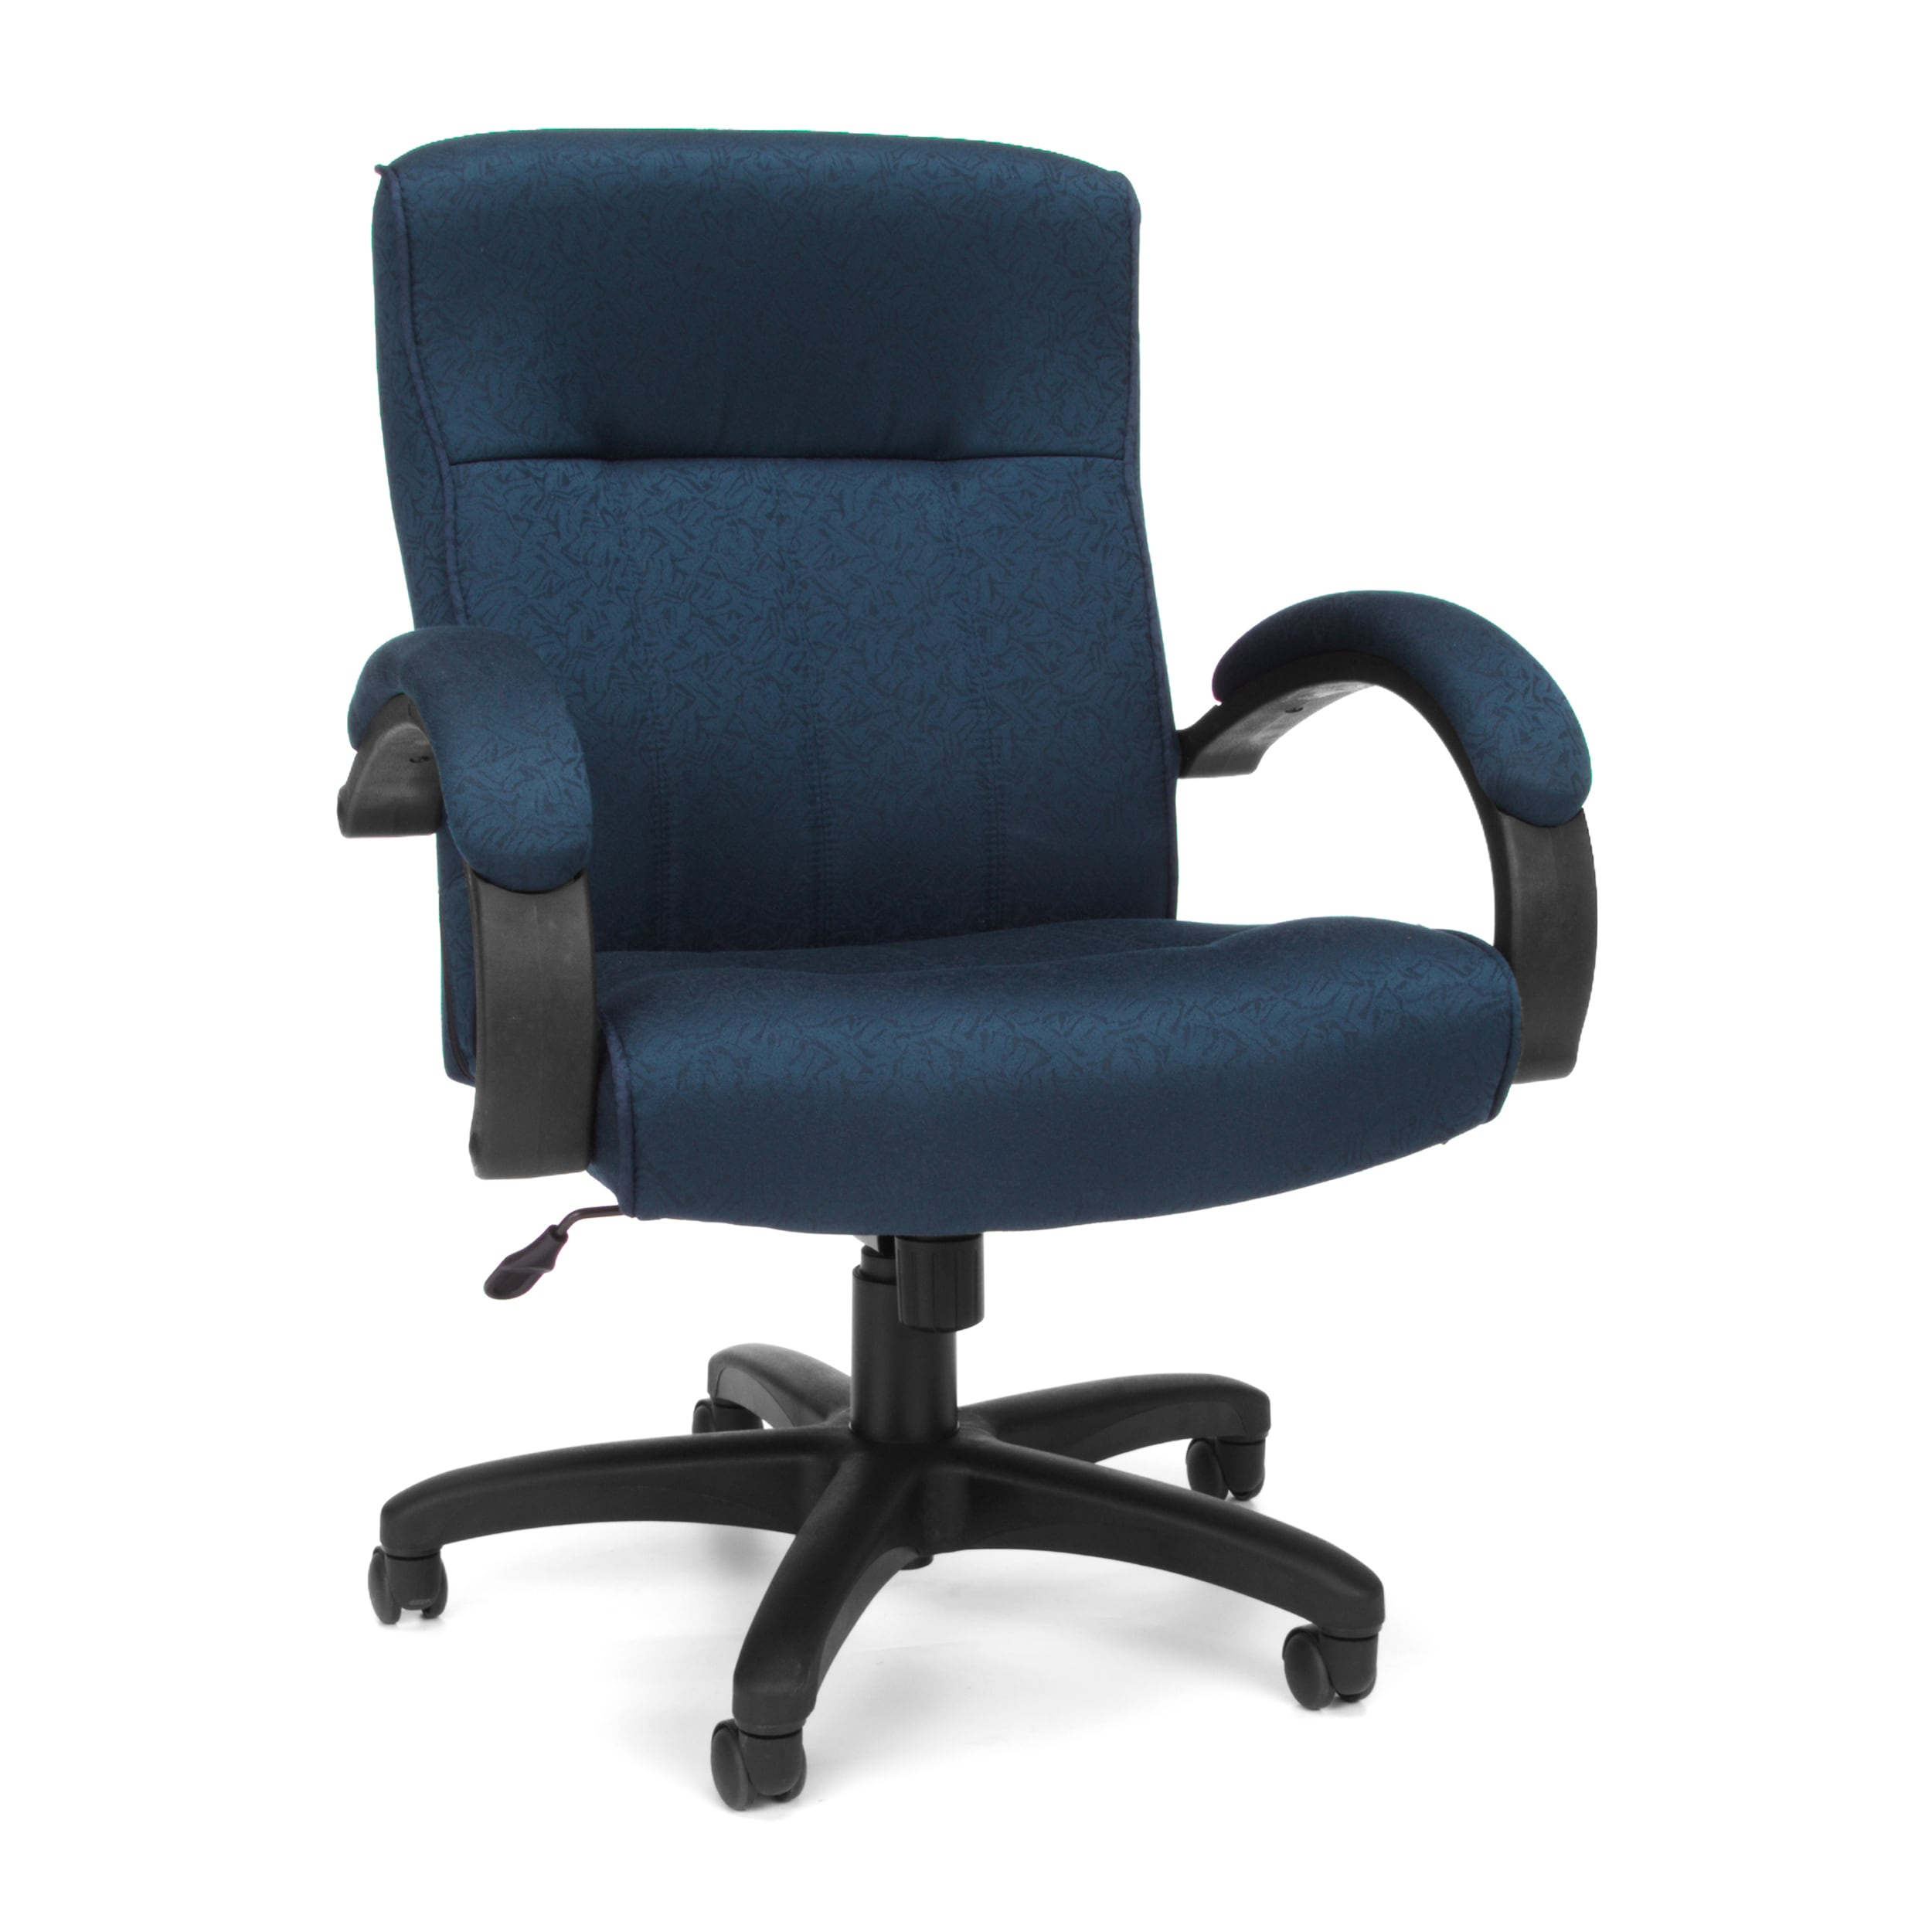 ofm blue black executive office chair ebay